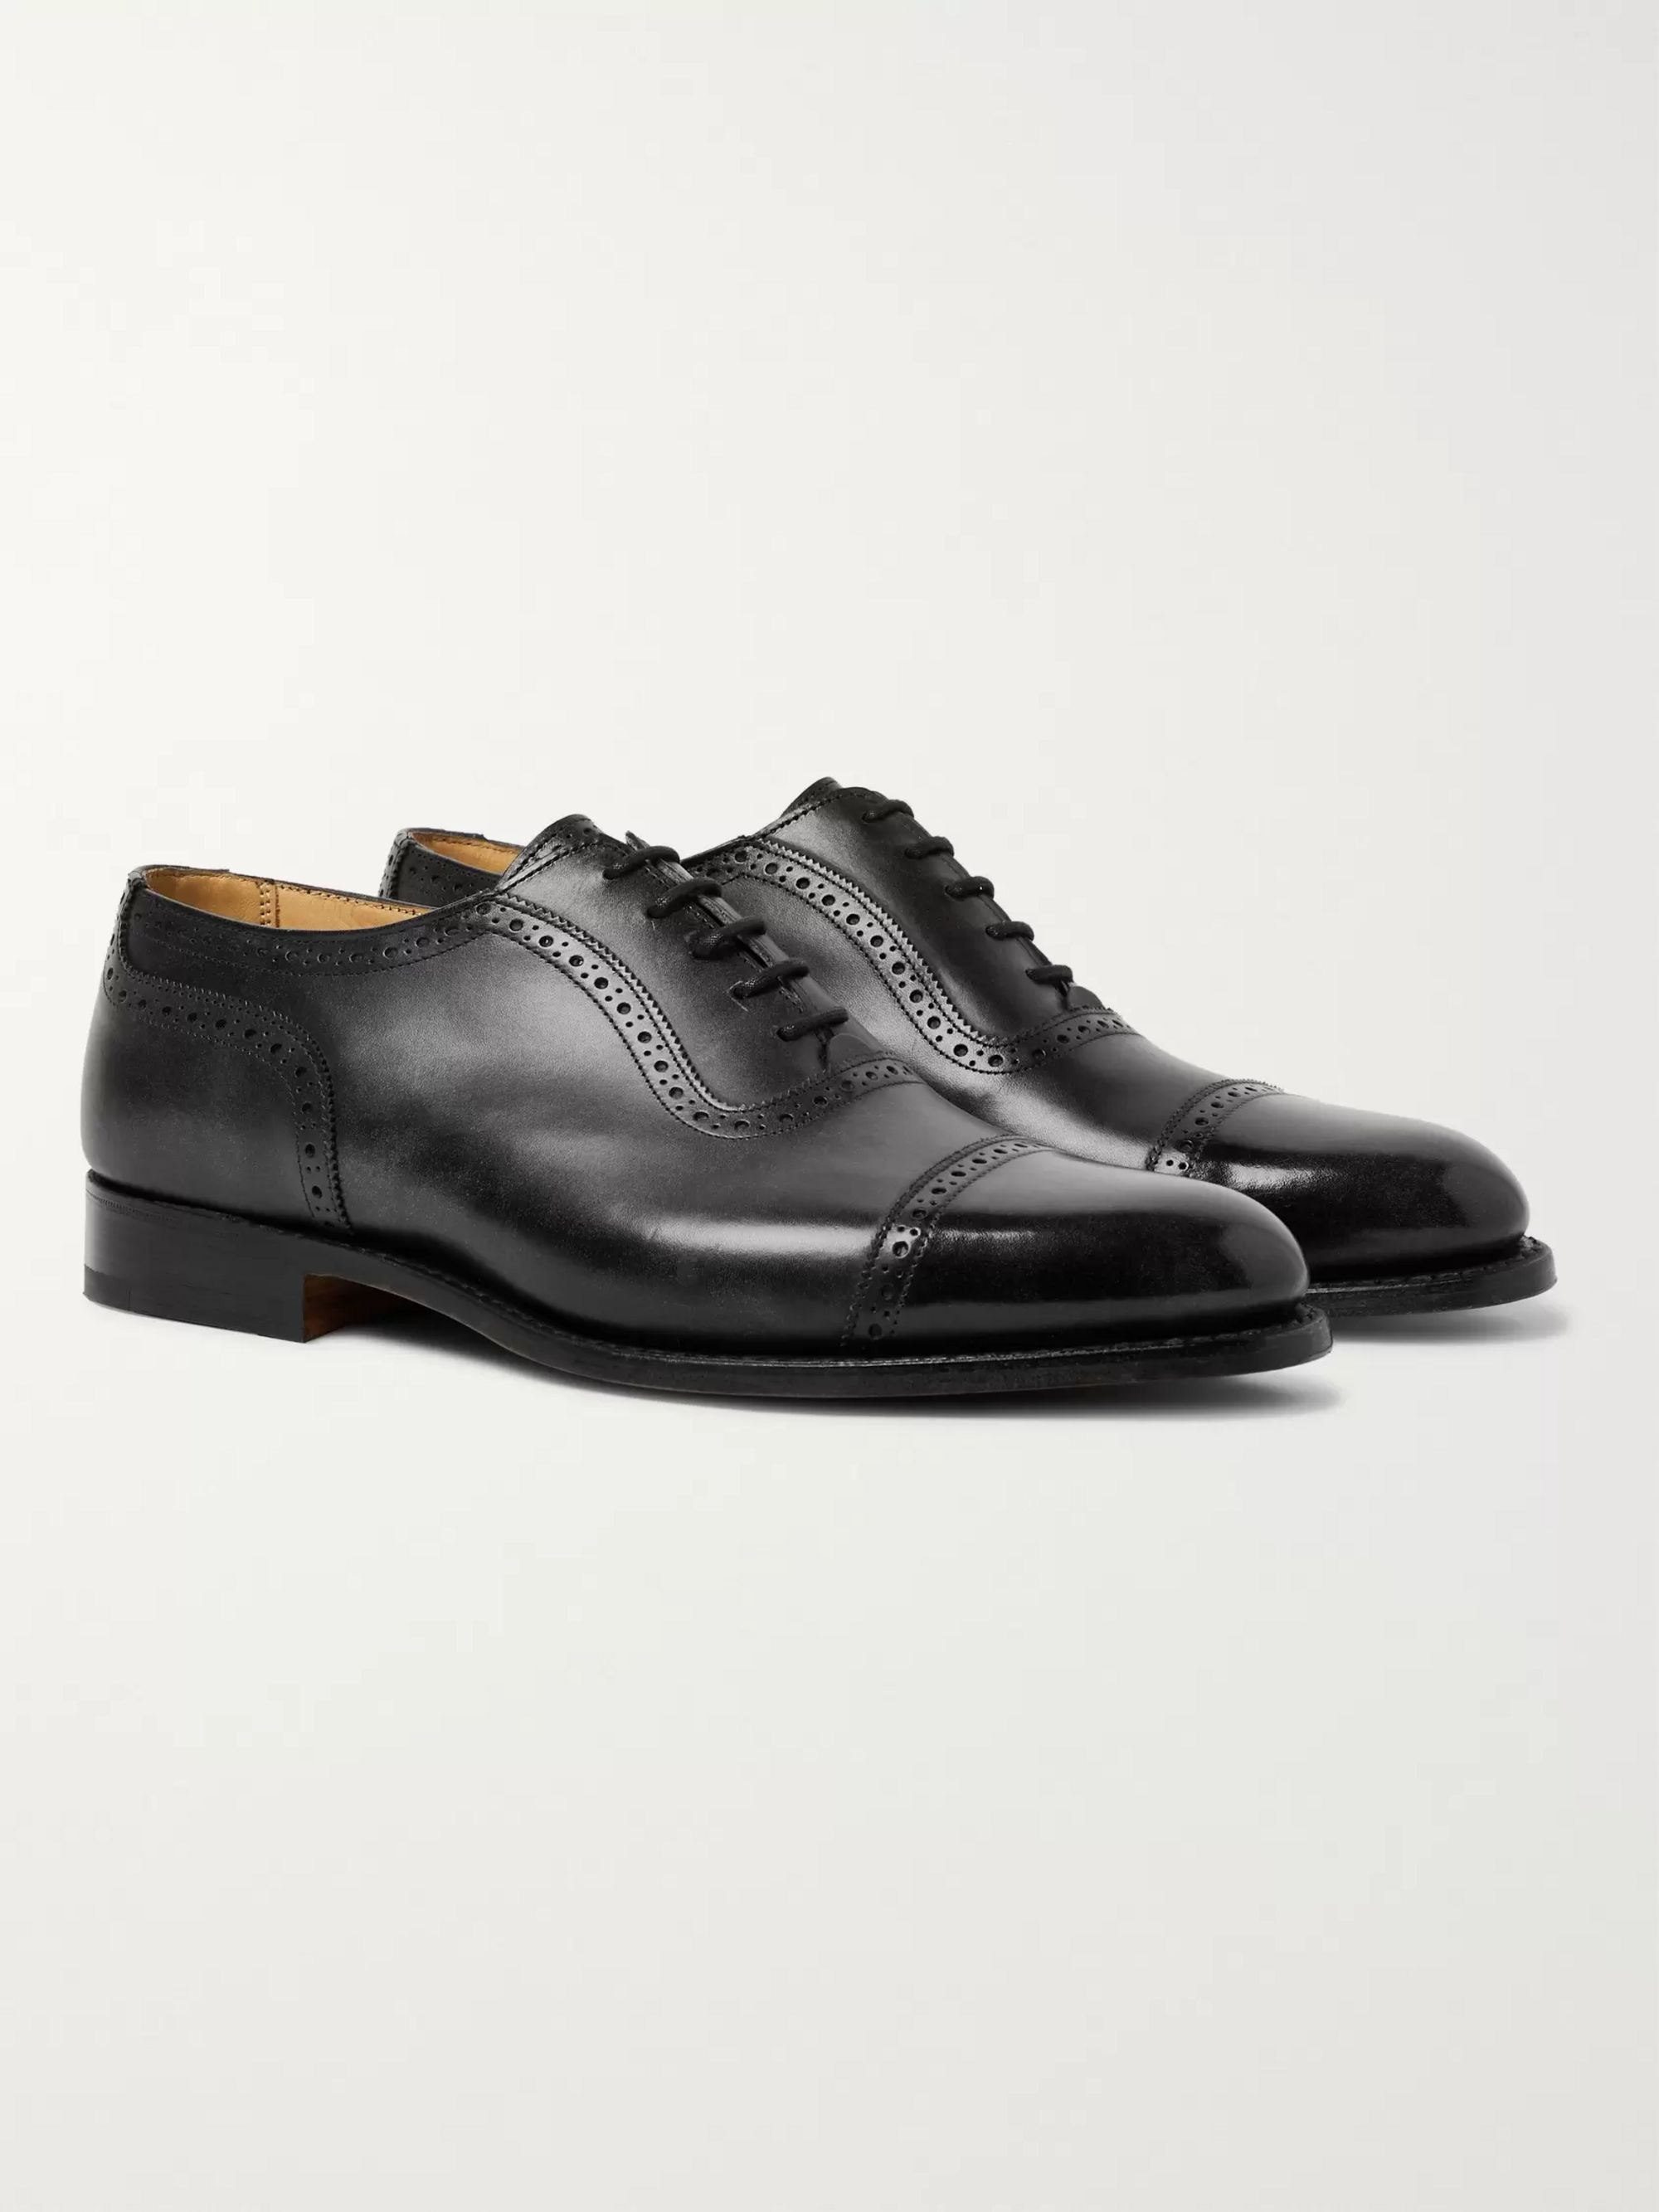 Tricker's Trenton Cap-Toe Leather Oxford Brogues